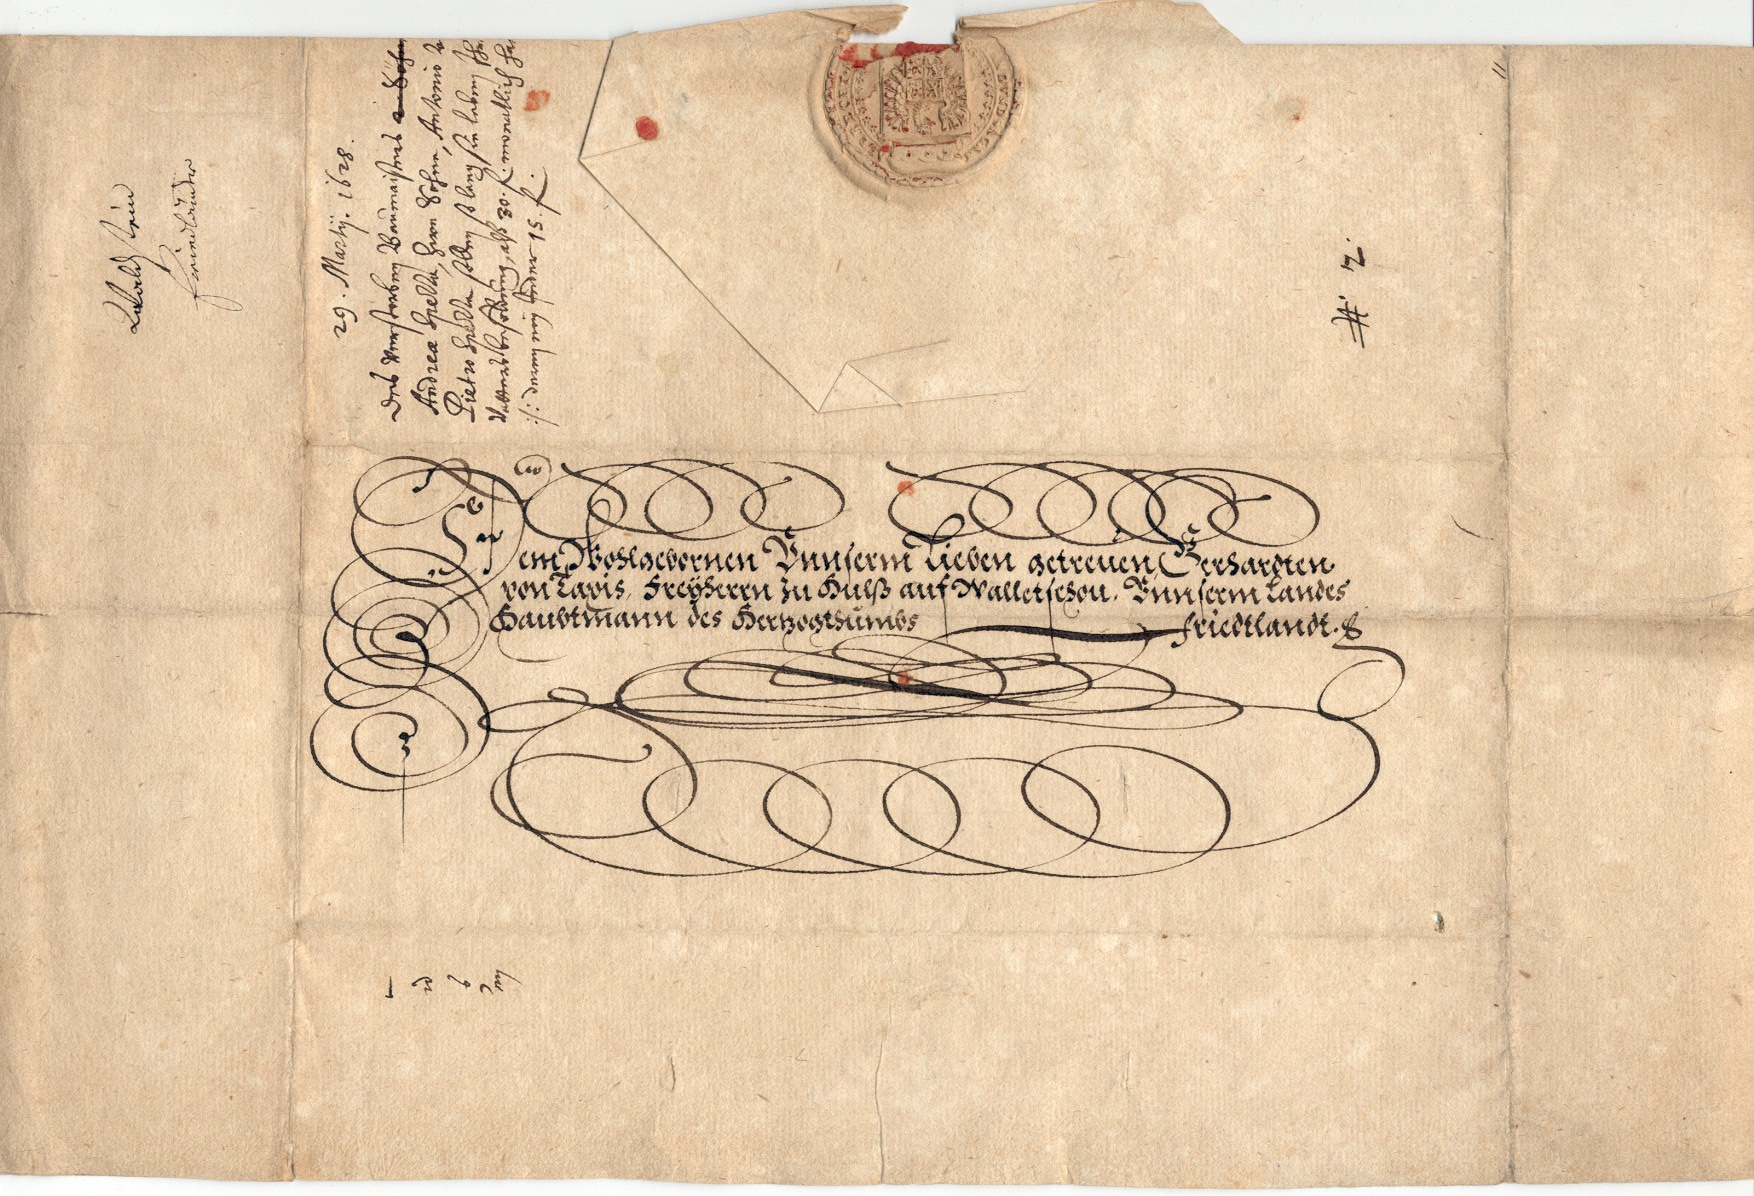 An opened lettersheet sent in 1628 from Generalissimo Wallenstein to his chancellor concerning the continuation of the salary of his deceased builder to his sons. The outside of the lettersheet shows folds, address, and the seal of Wallenstein. The letter was written on the obverse side.